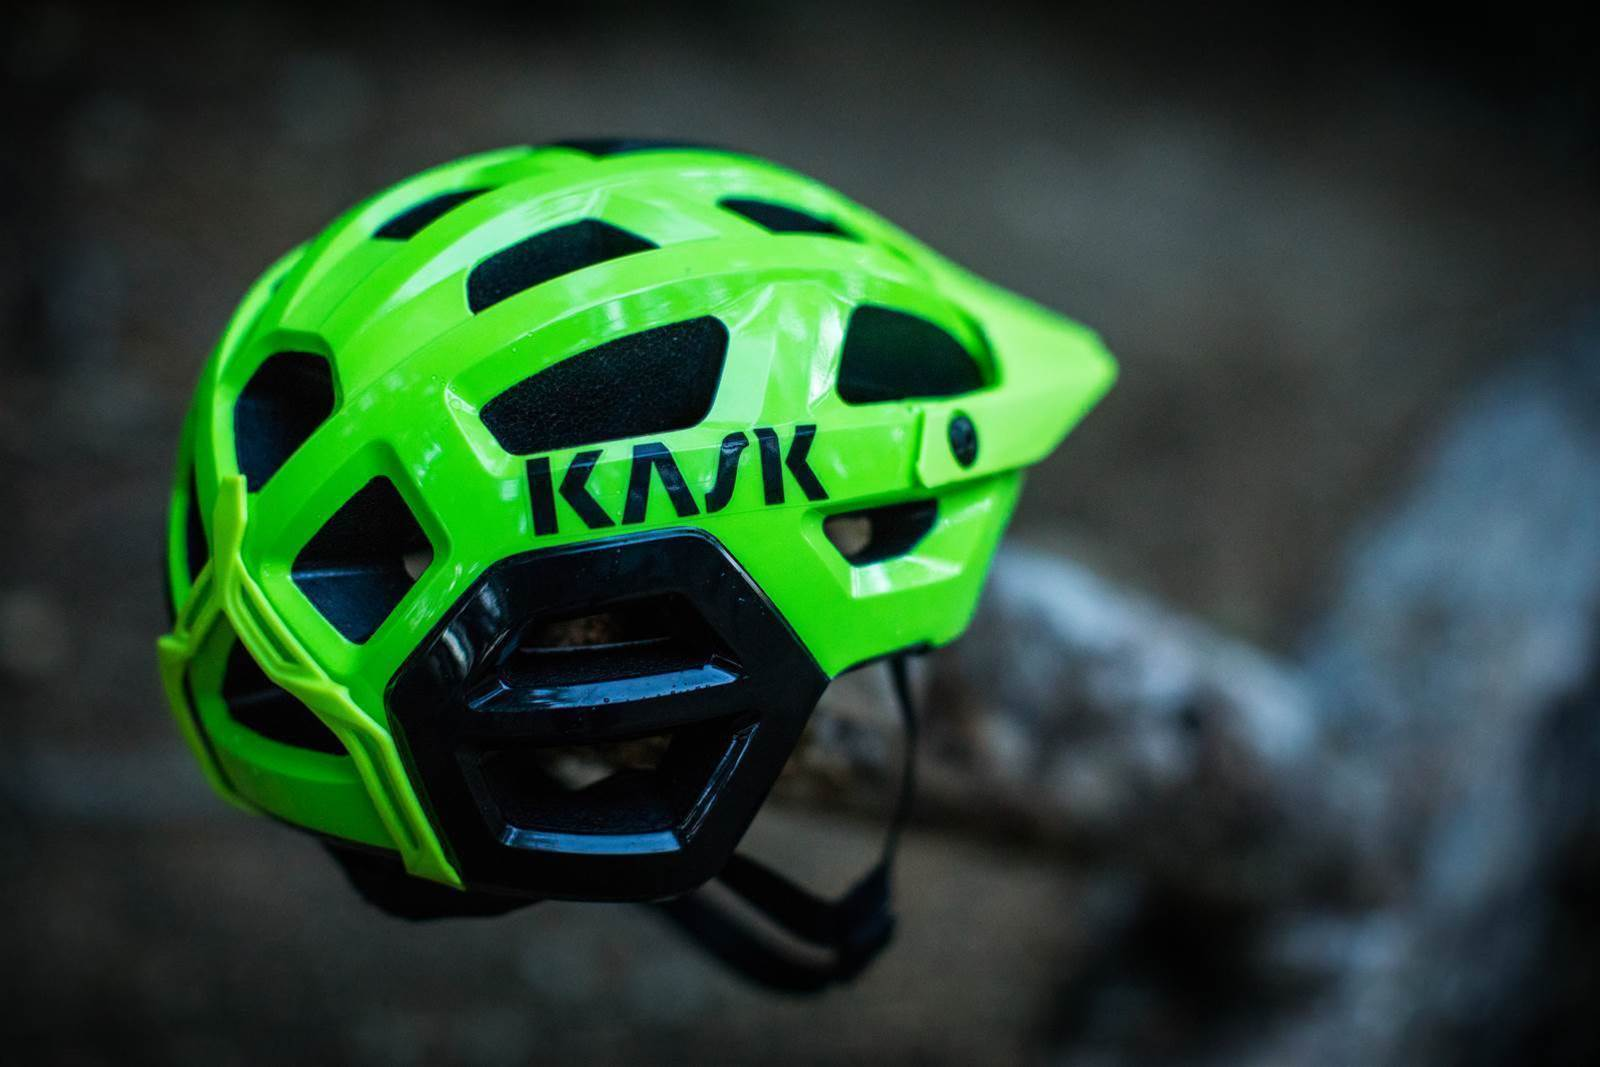 TESTED: Kask Rex helmet